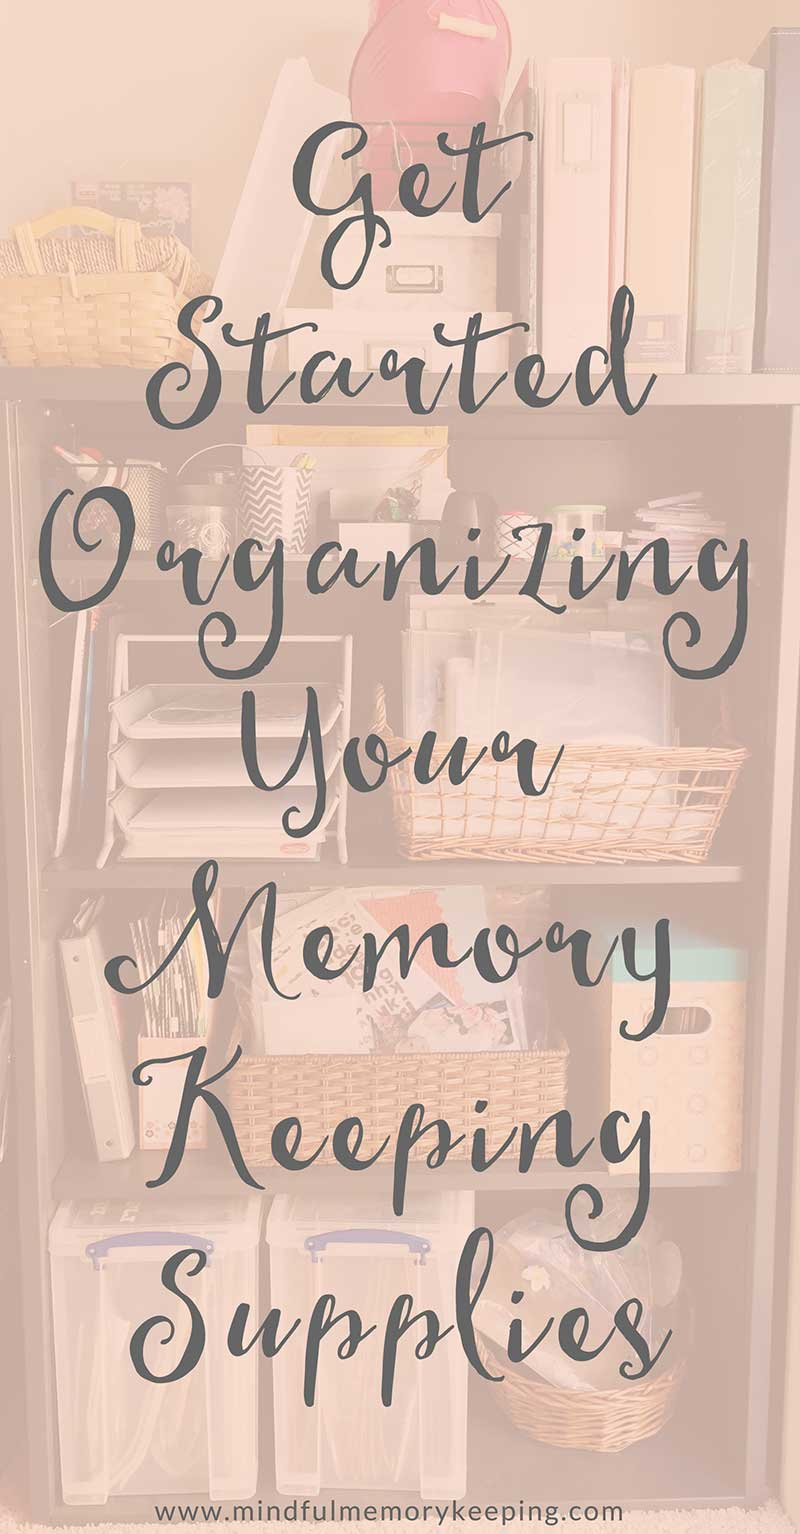 Get Started Organizing Your Memory Keeping Supplies | Mindful Memory Keeping